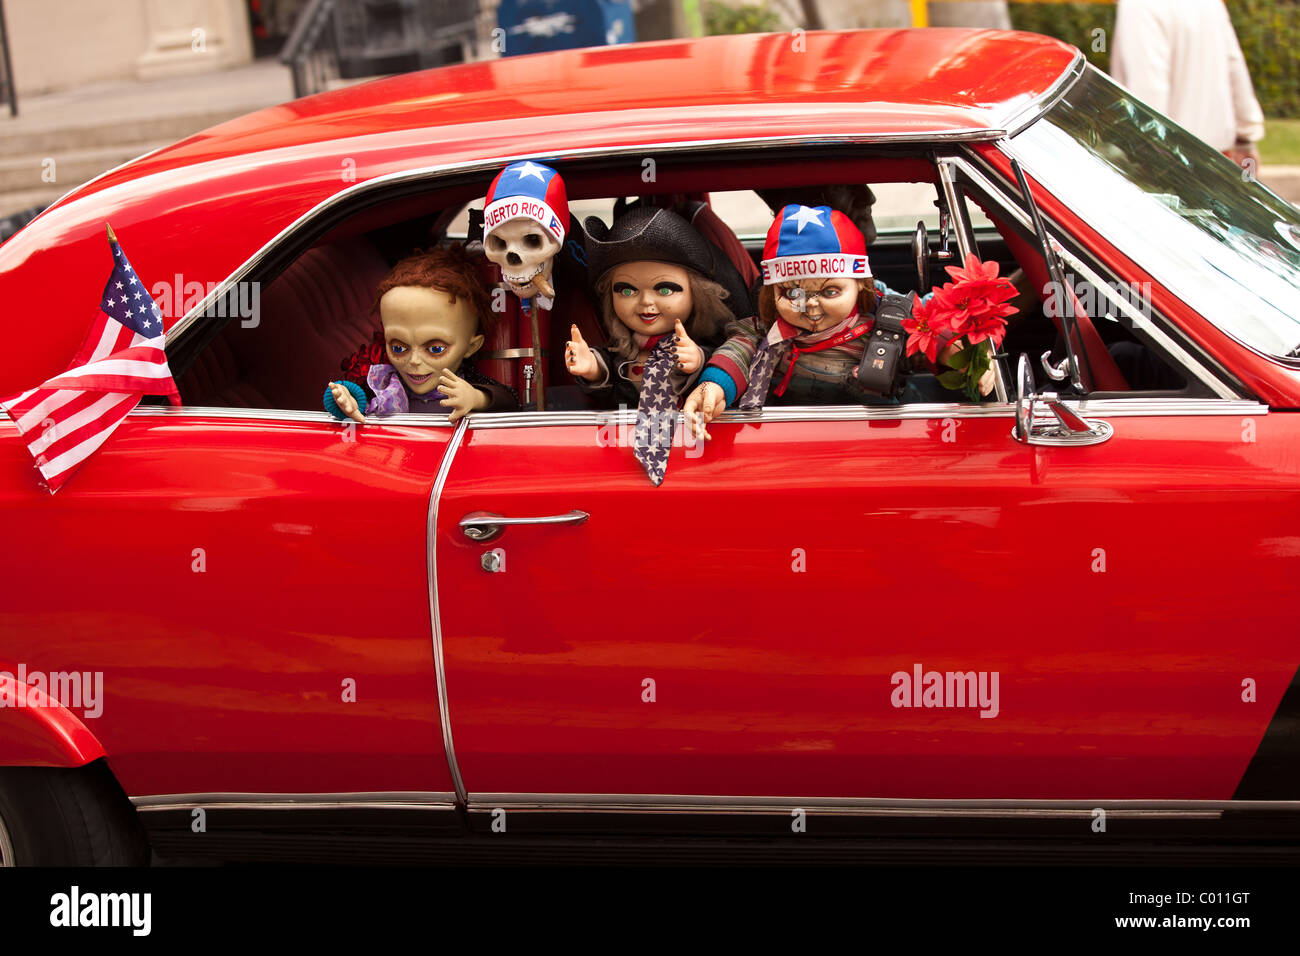 A vintage muscle car decorated with dolls and flags in Old San Juan, Puerto Rico. - Stock Image